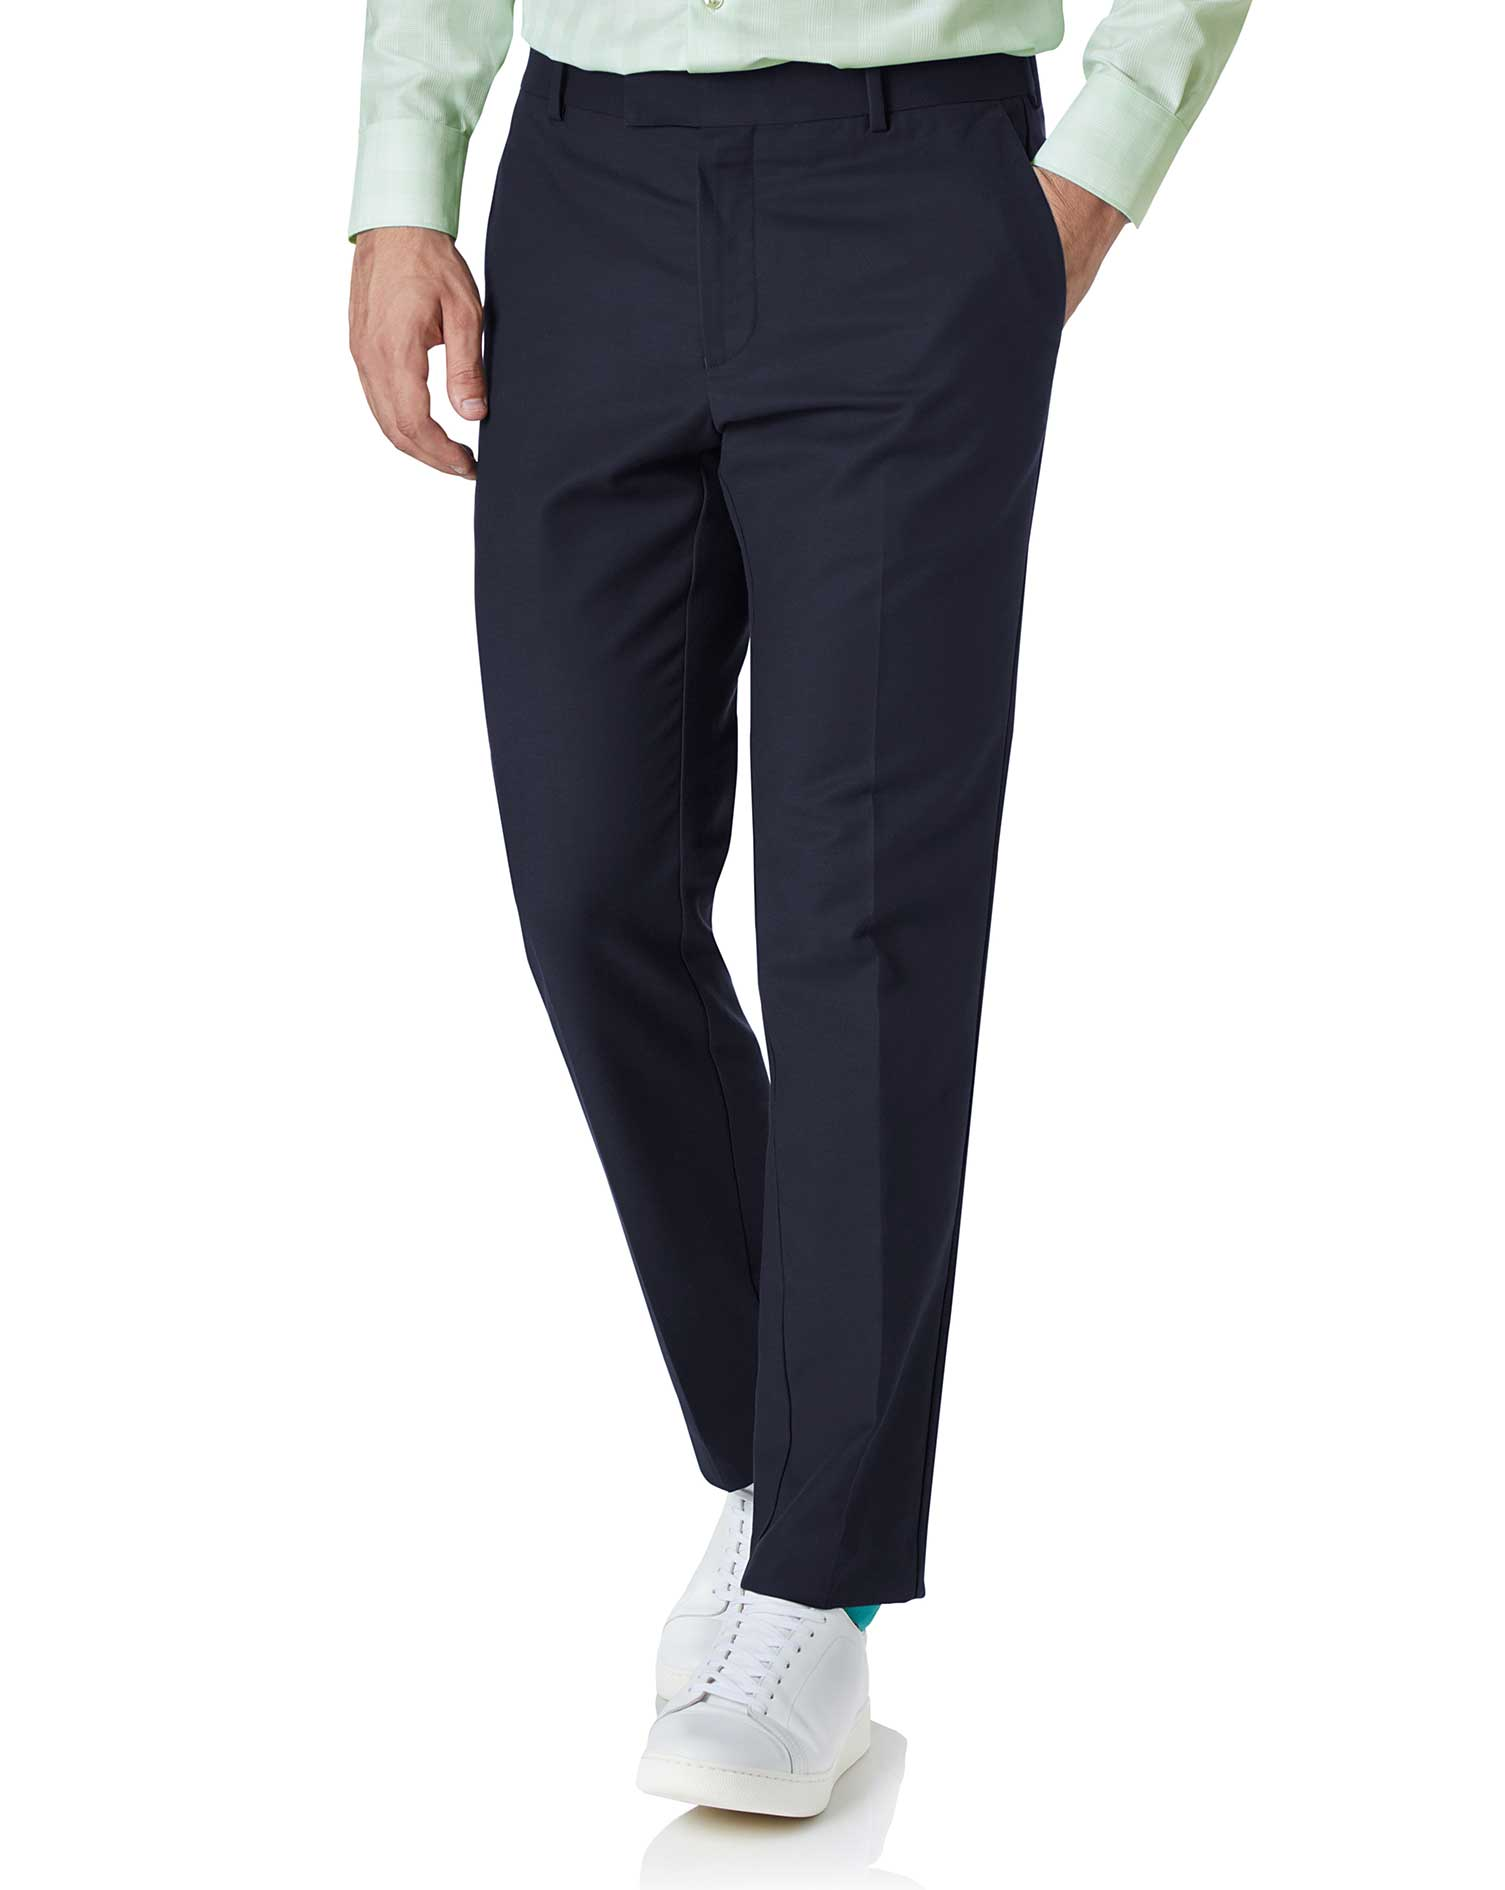 Navy Slim Fit Natural Performance Trouser Size W40 L32 by Charles Tyrwhitt